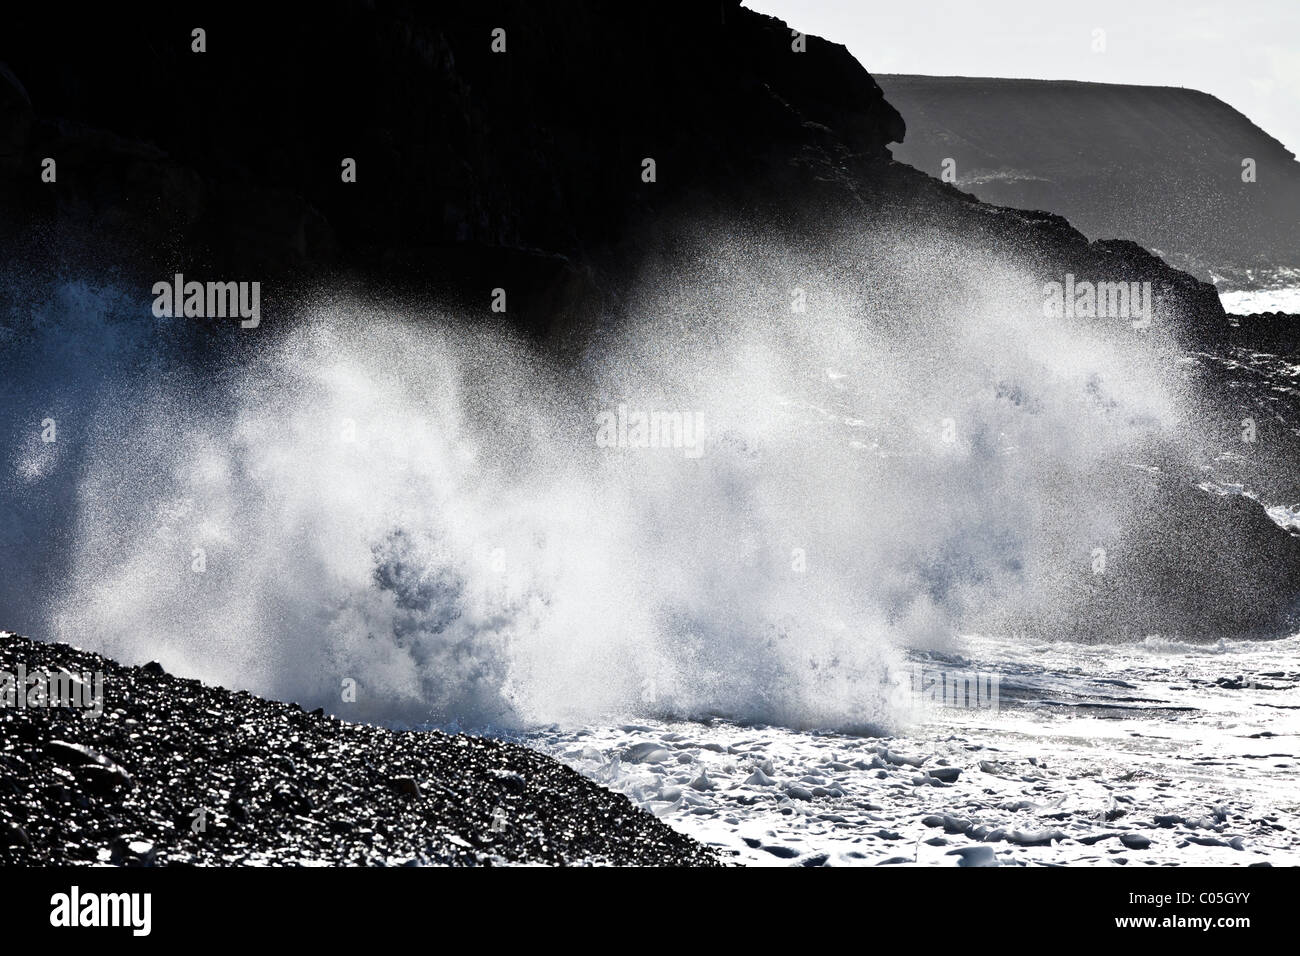 Heavy Atlantic seas with large waves crashing onto the beach at Ajuy on the Canary Island of Fuerteventura - Stock Image